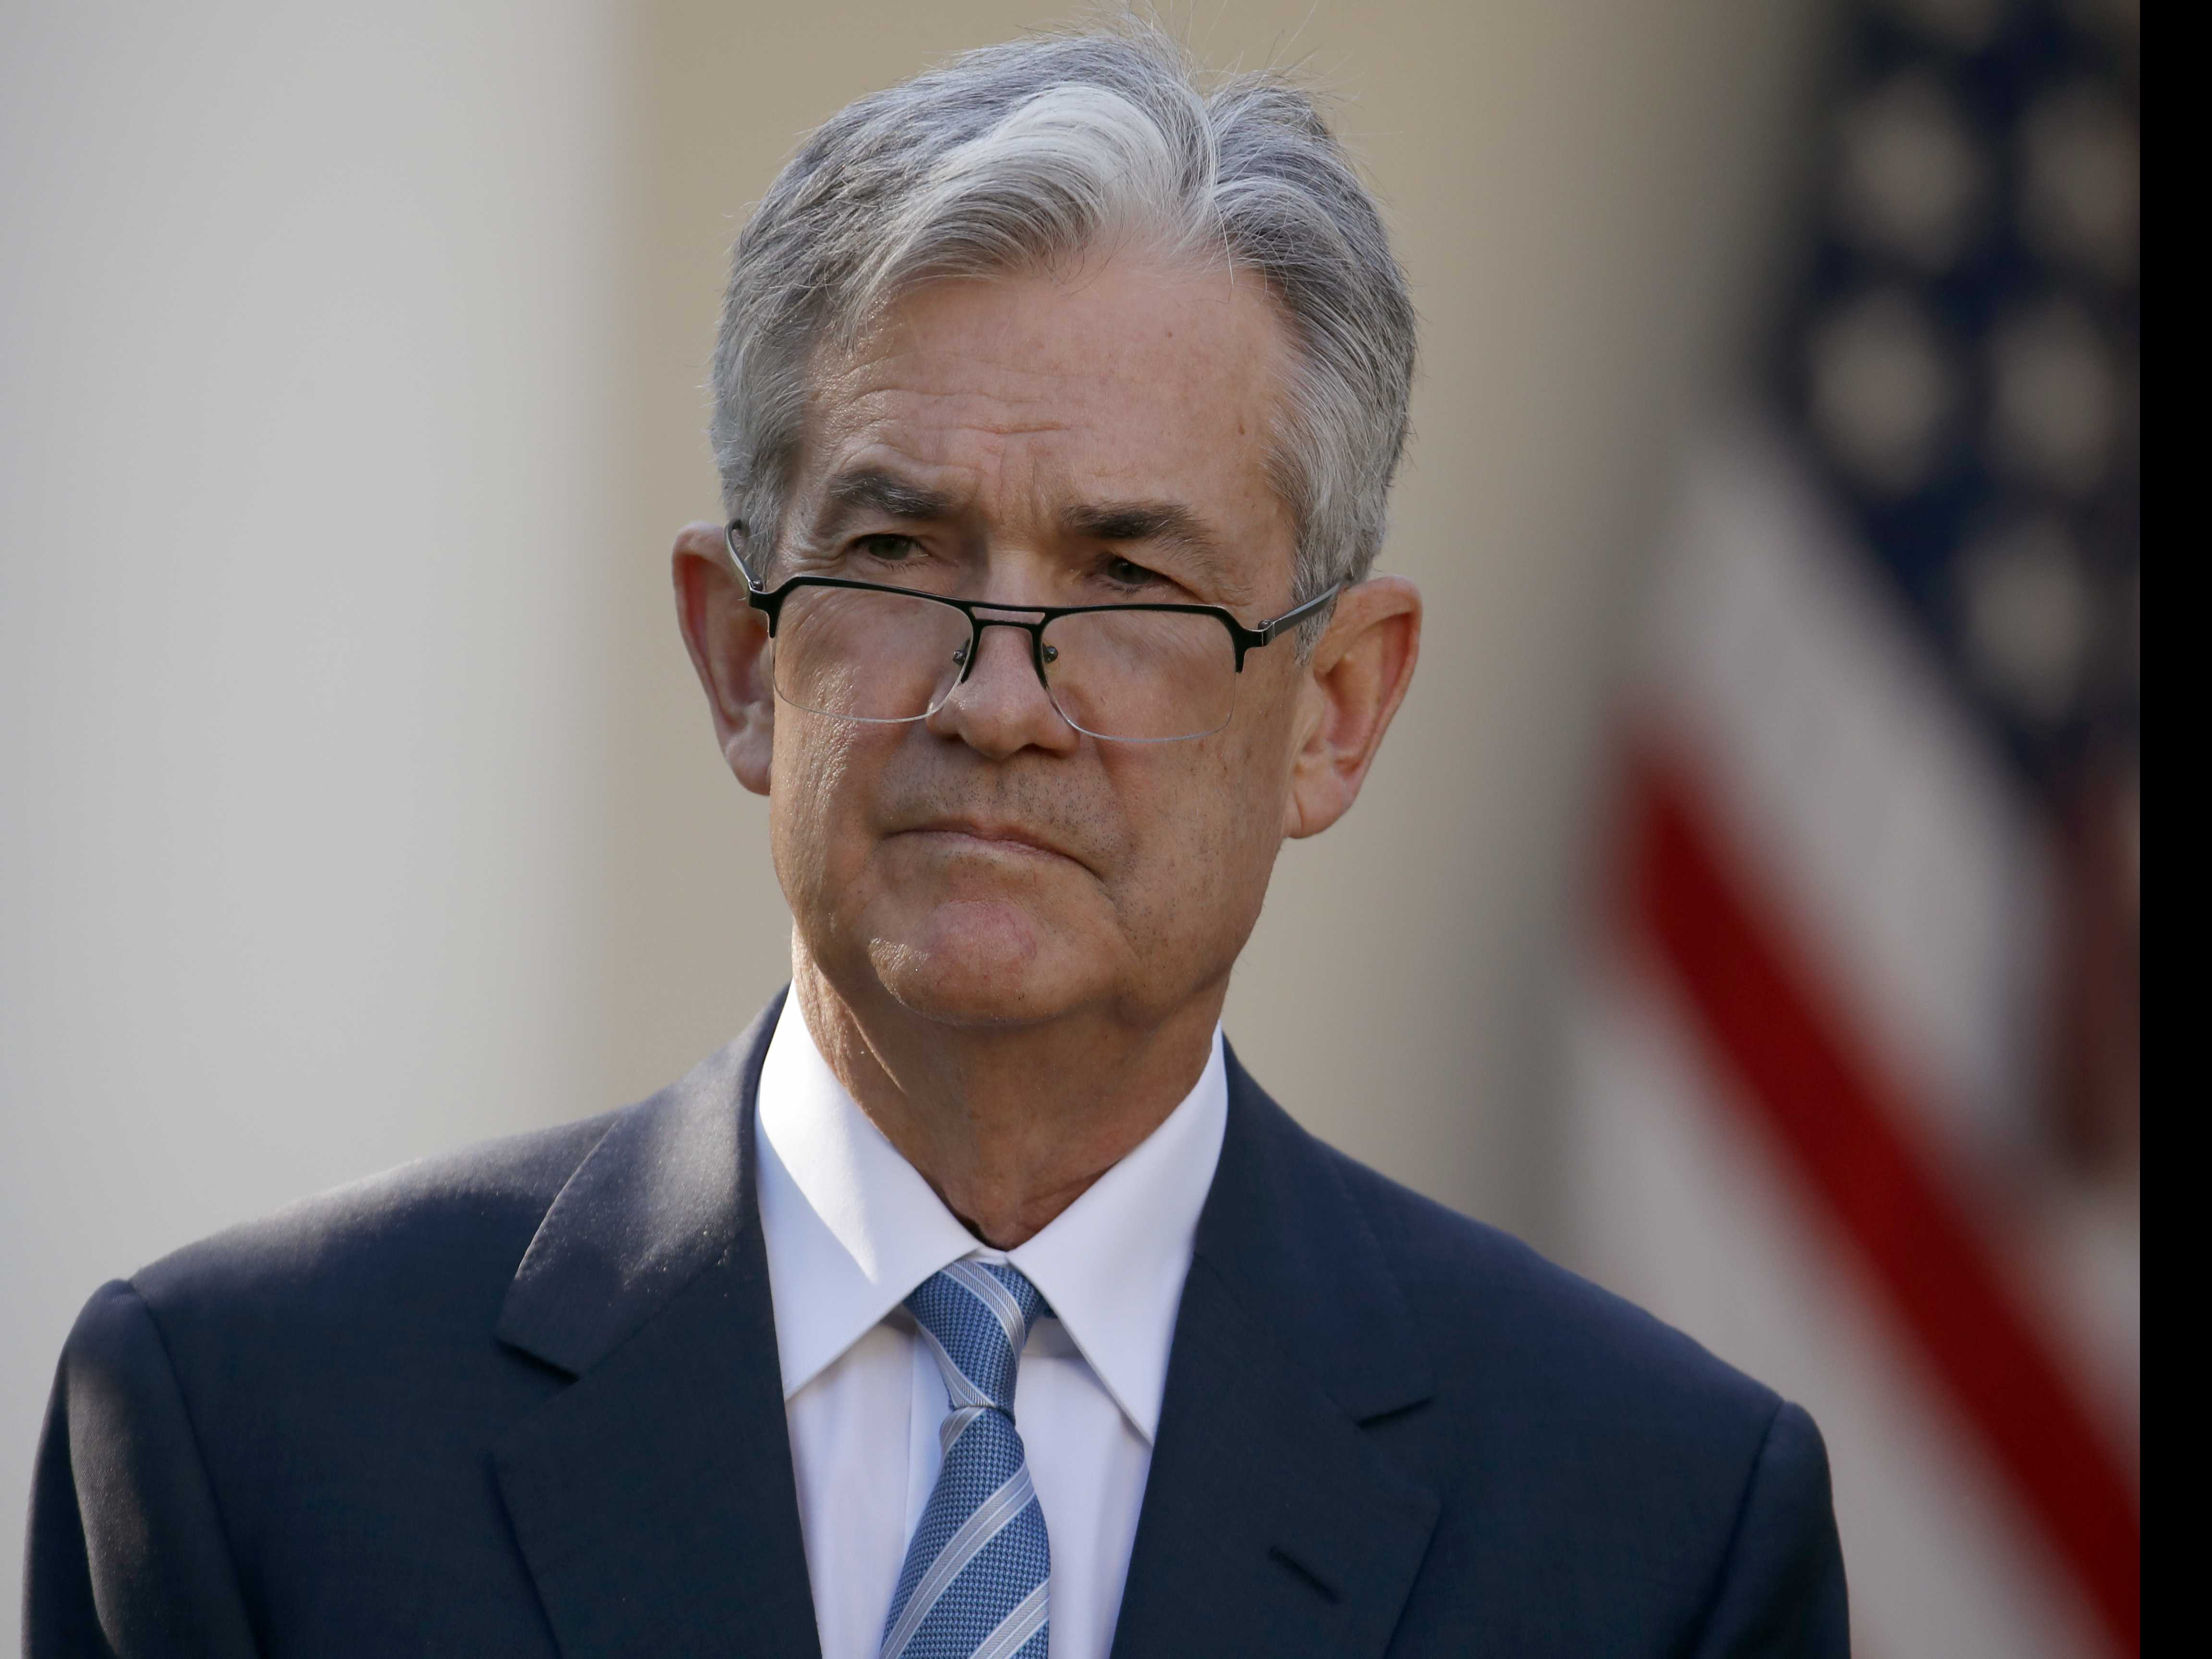 What Powell Brings to Fed Post: A Gift for Forging Consensus